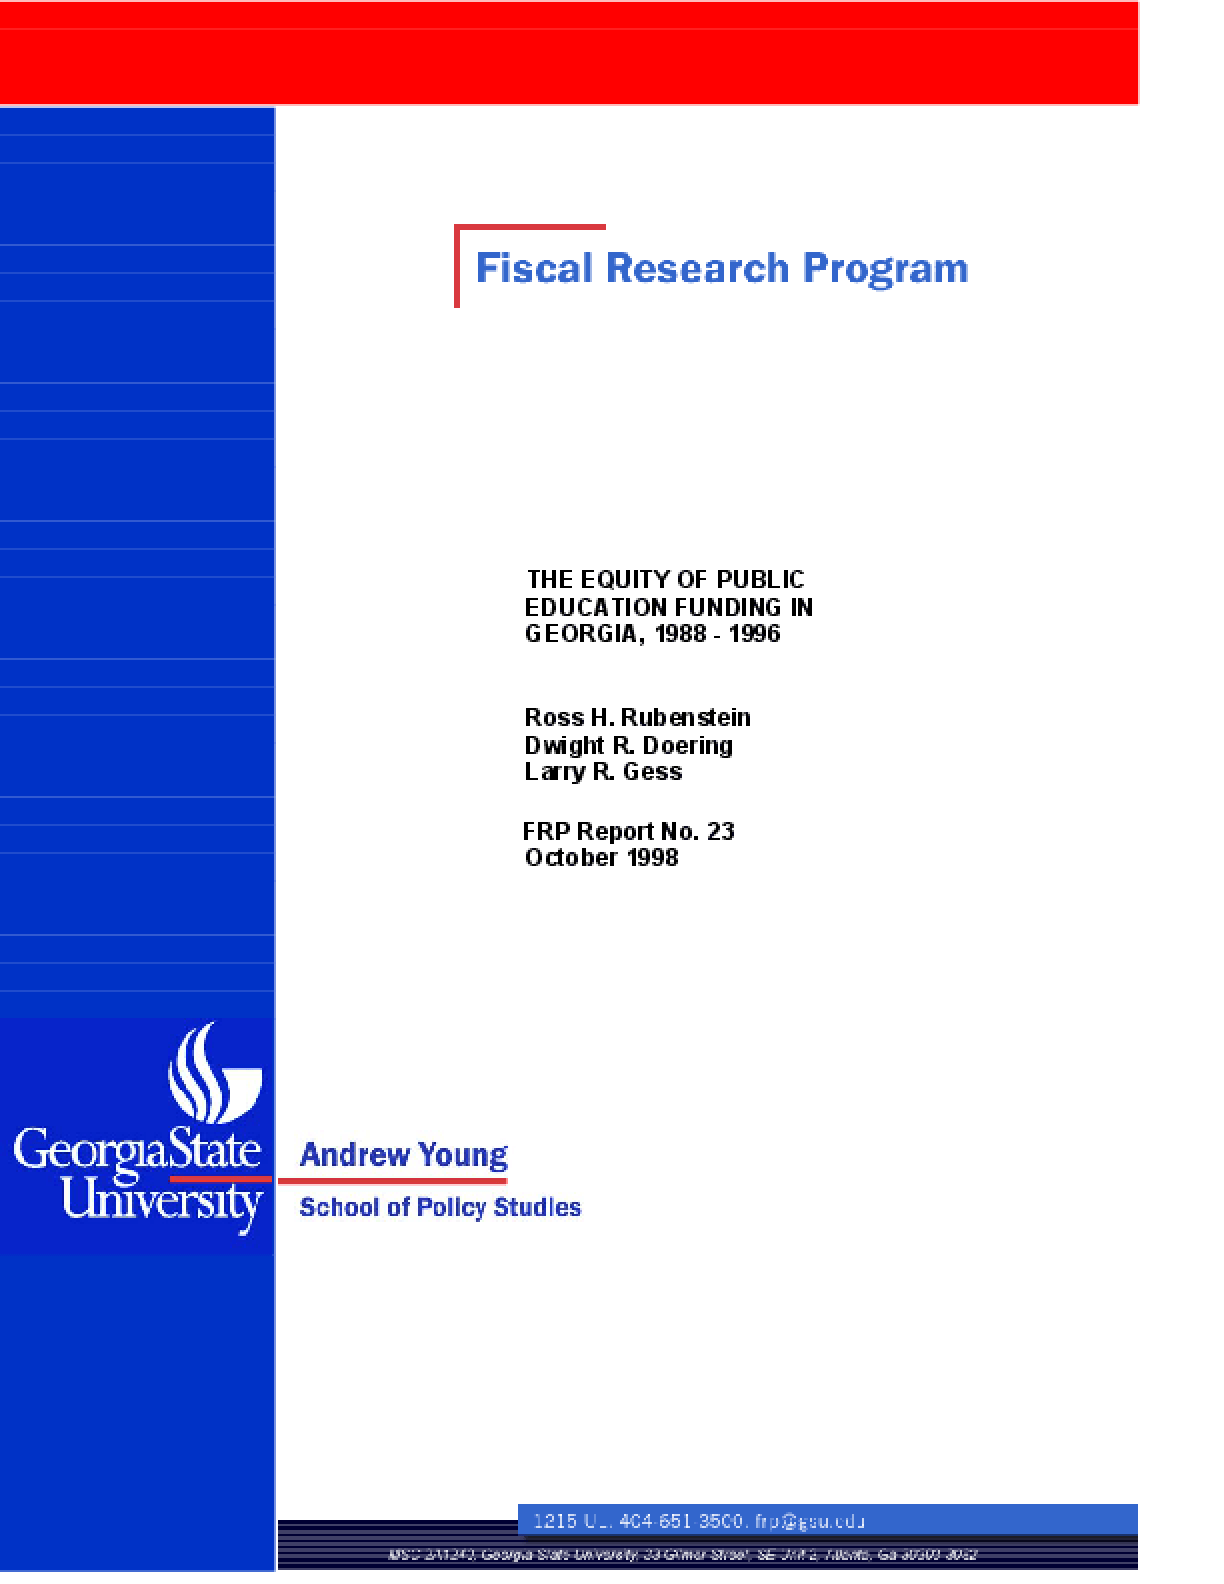 The Equity of Public Education Funding in Georgia, 1988-1996